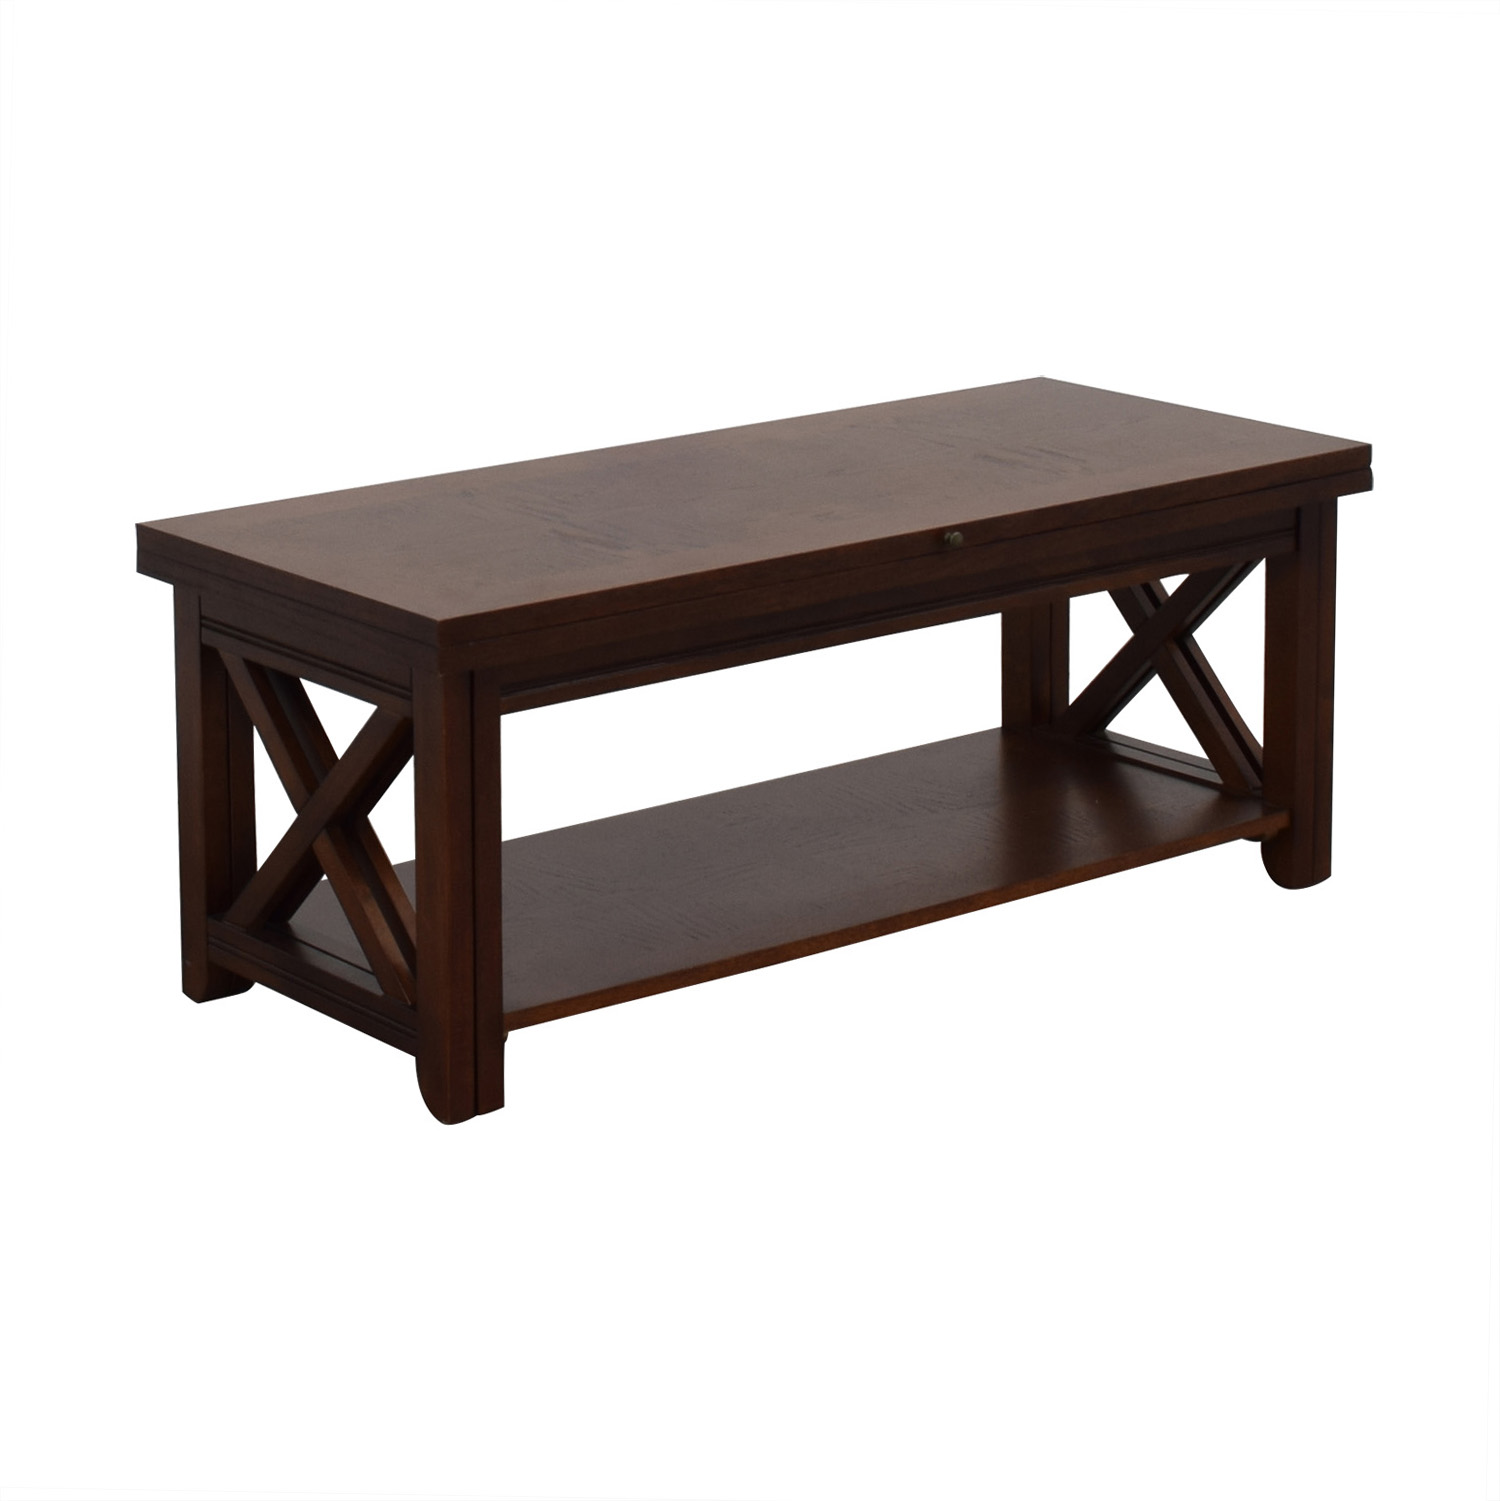 Fantastic 55 Off Raymour Flanigan Raymour Flanigan Tucson Extendable Coffee Table Tables Andrewgaddart Wooden Chair Designs For Living Room Andrewgaddartcom